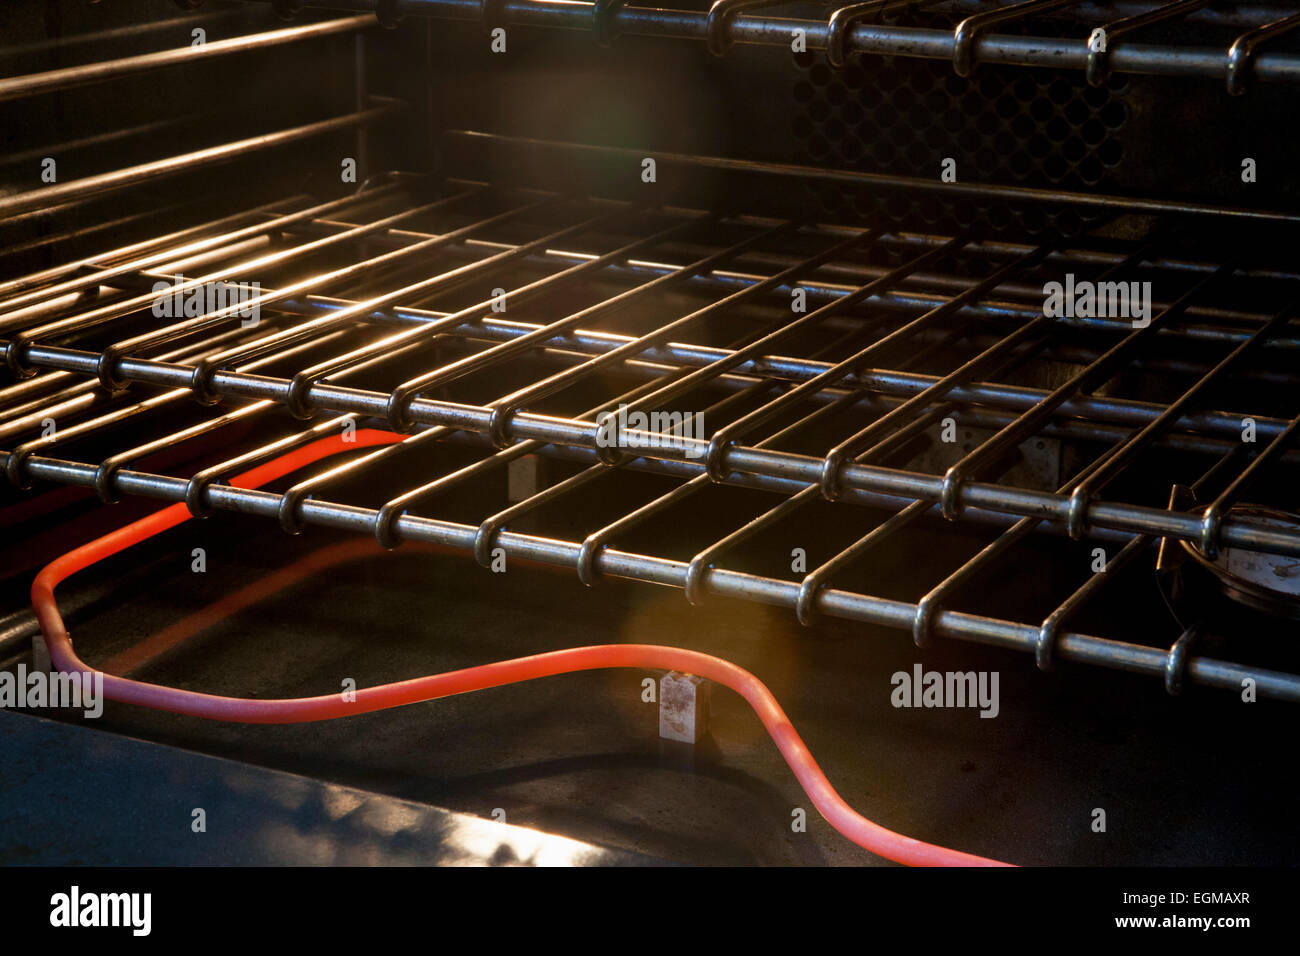 Electric Oven and Heating Coil - Stock Image